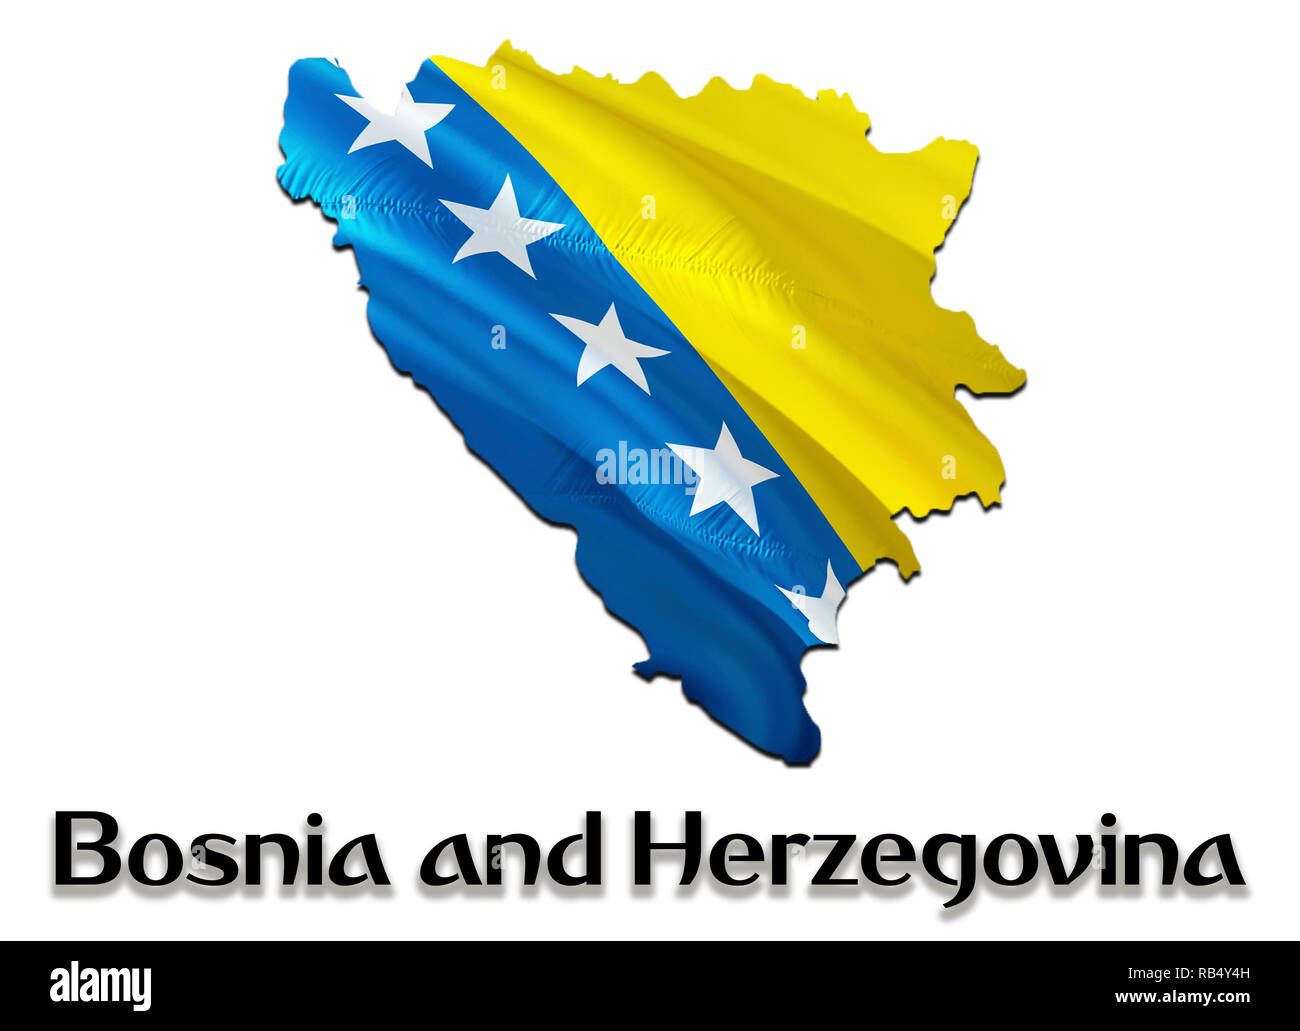 Flag Map of Bosnia and Herzegovina. 3D rendering Bosnia and Herzegovina map and flag. The national symbol of Bosnia and Herzegovina. National waving f - Stock Image